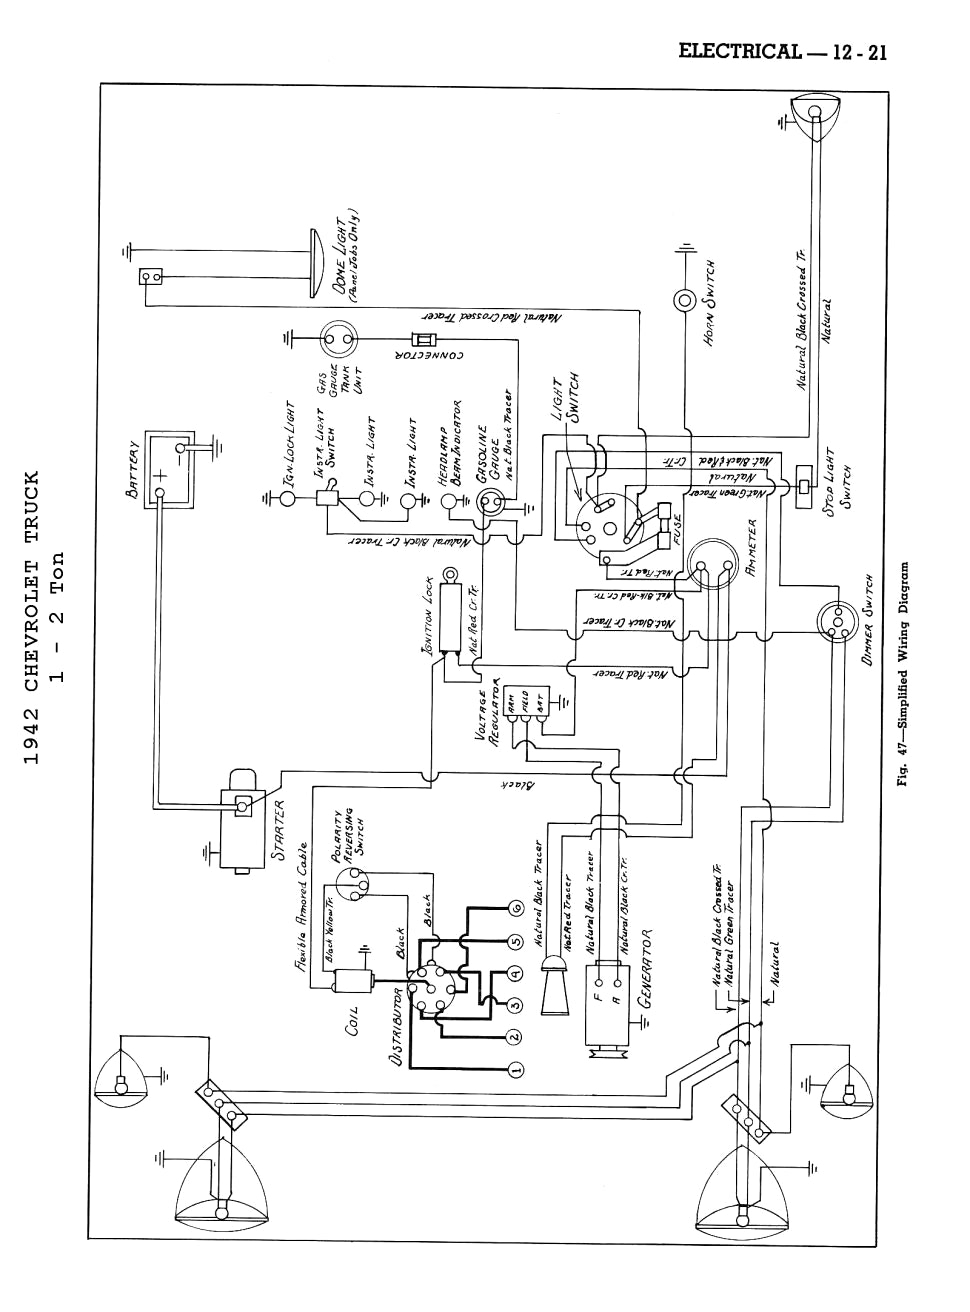 coleman mach 8 heat pump wiring diagram